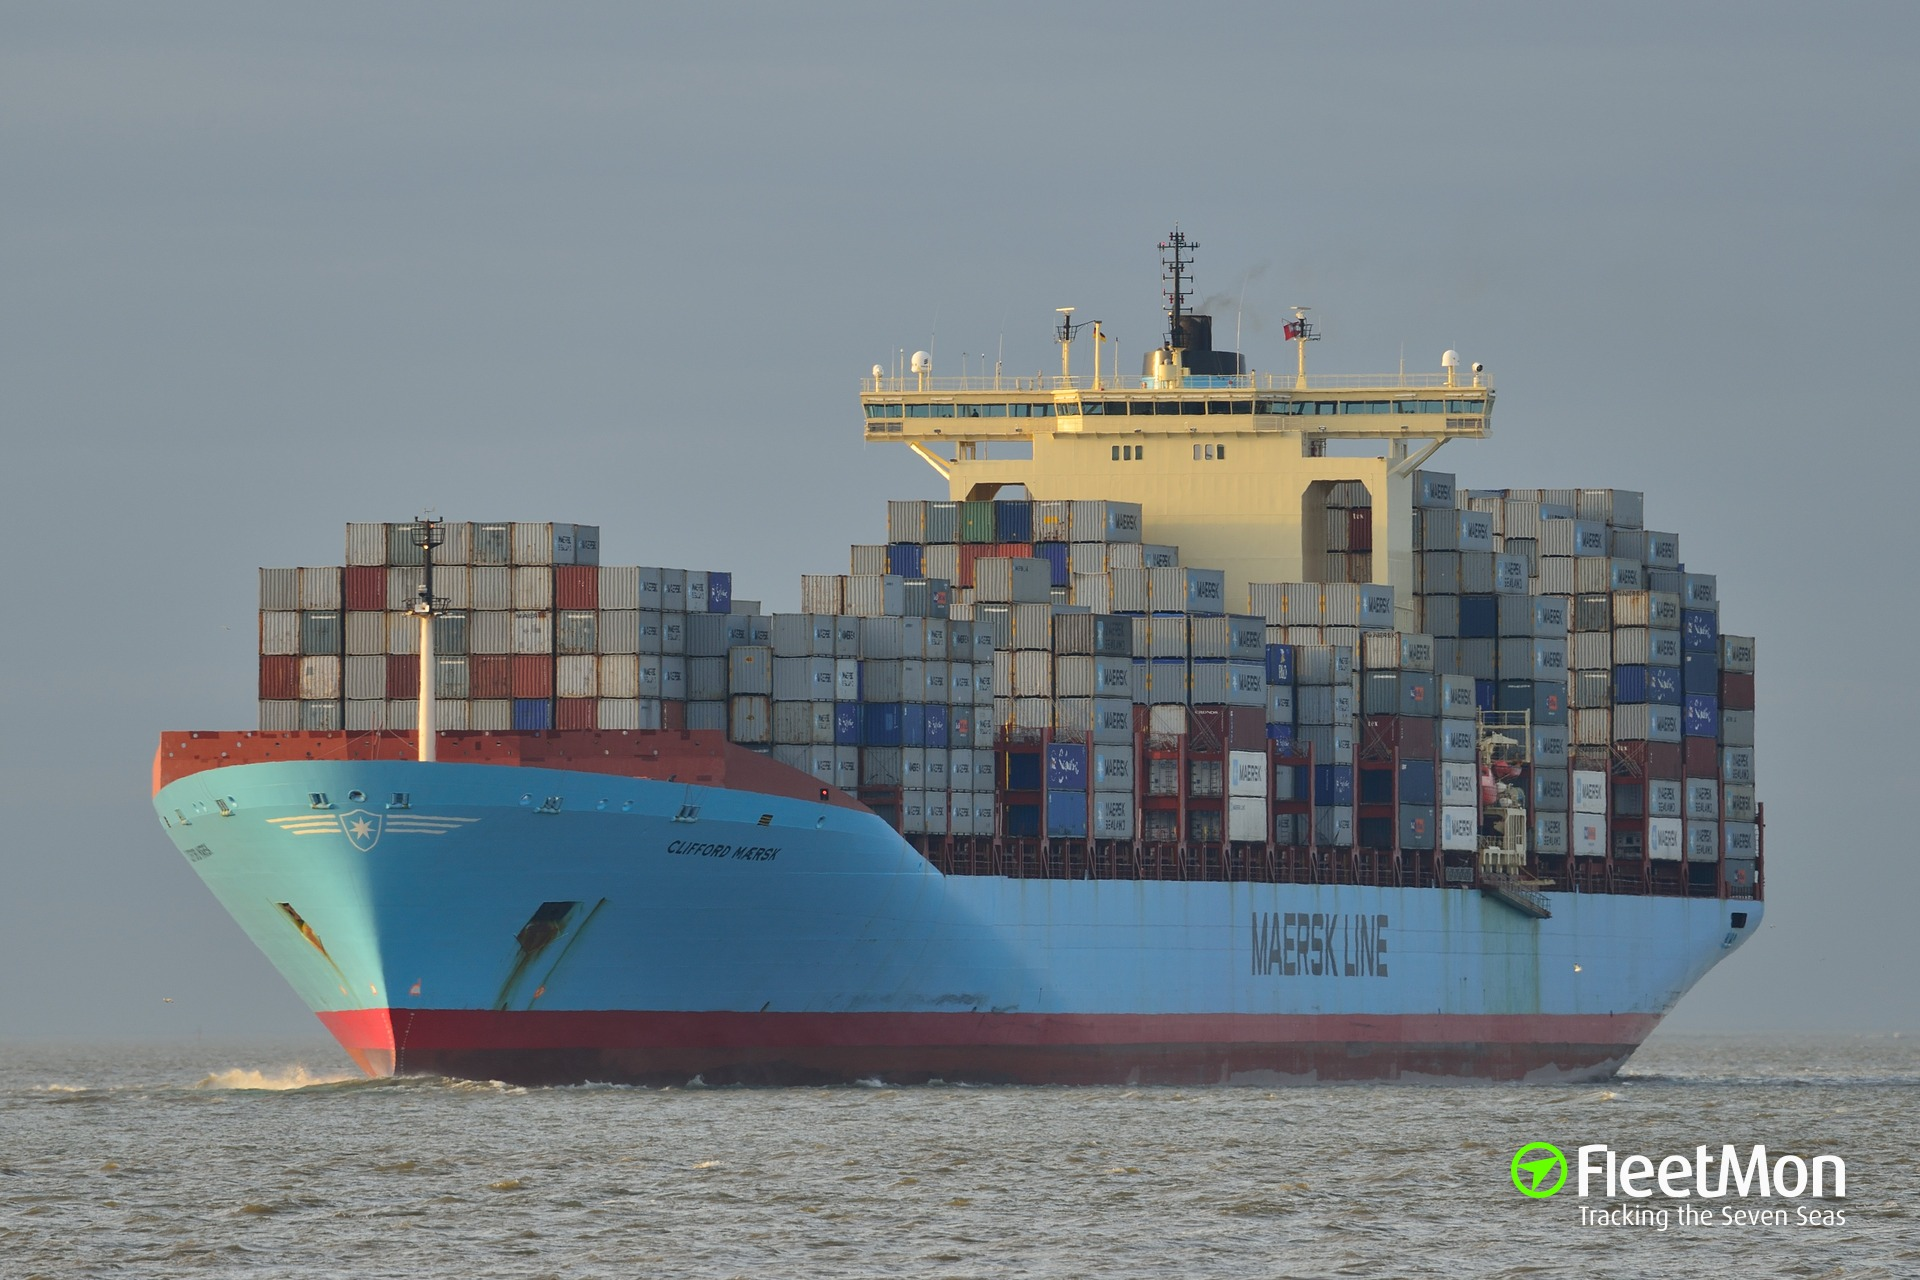 177 kilos of cocaine found attached to CLIFFORD MAERSK hull